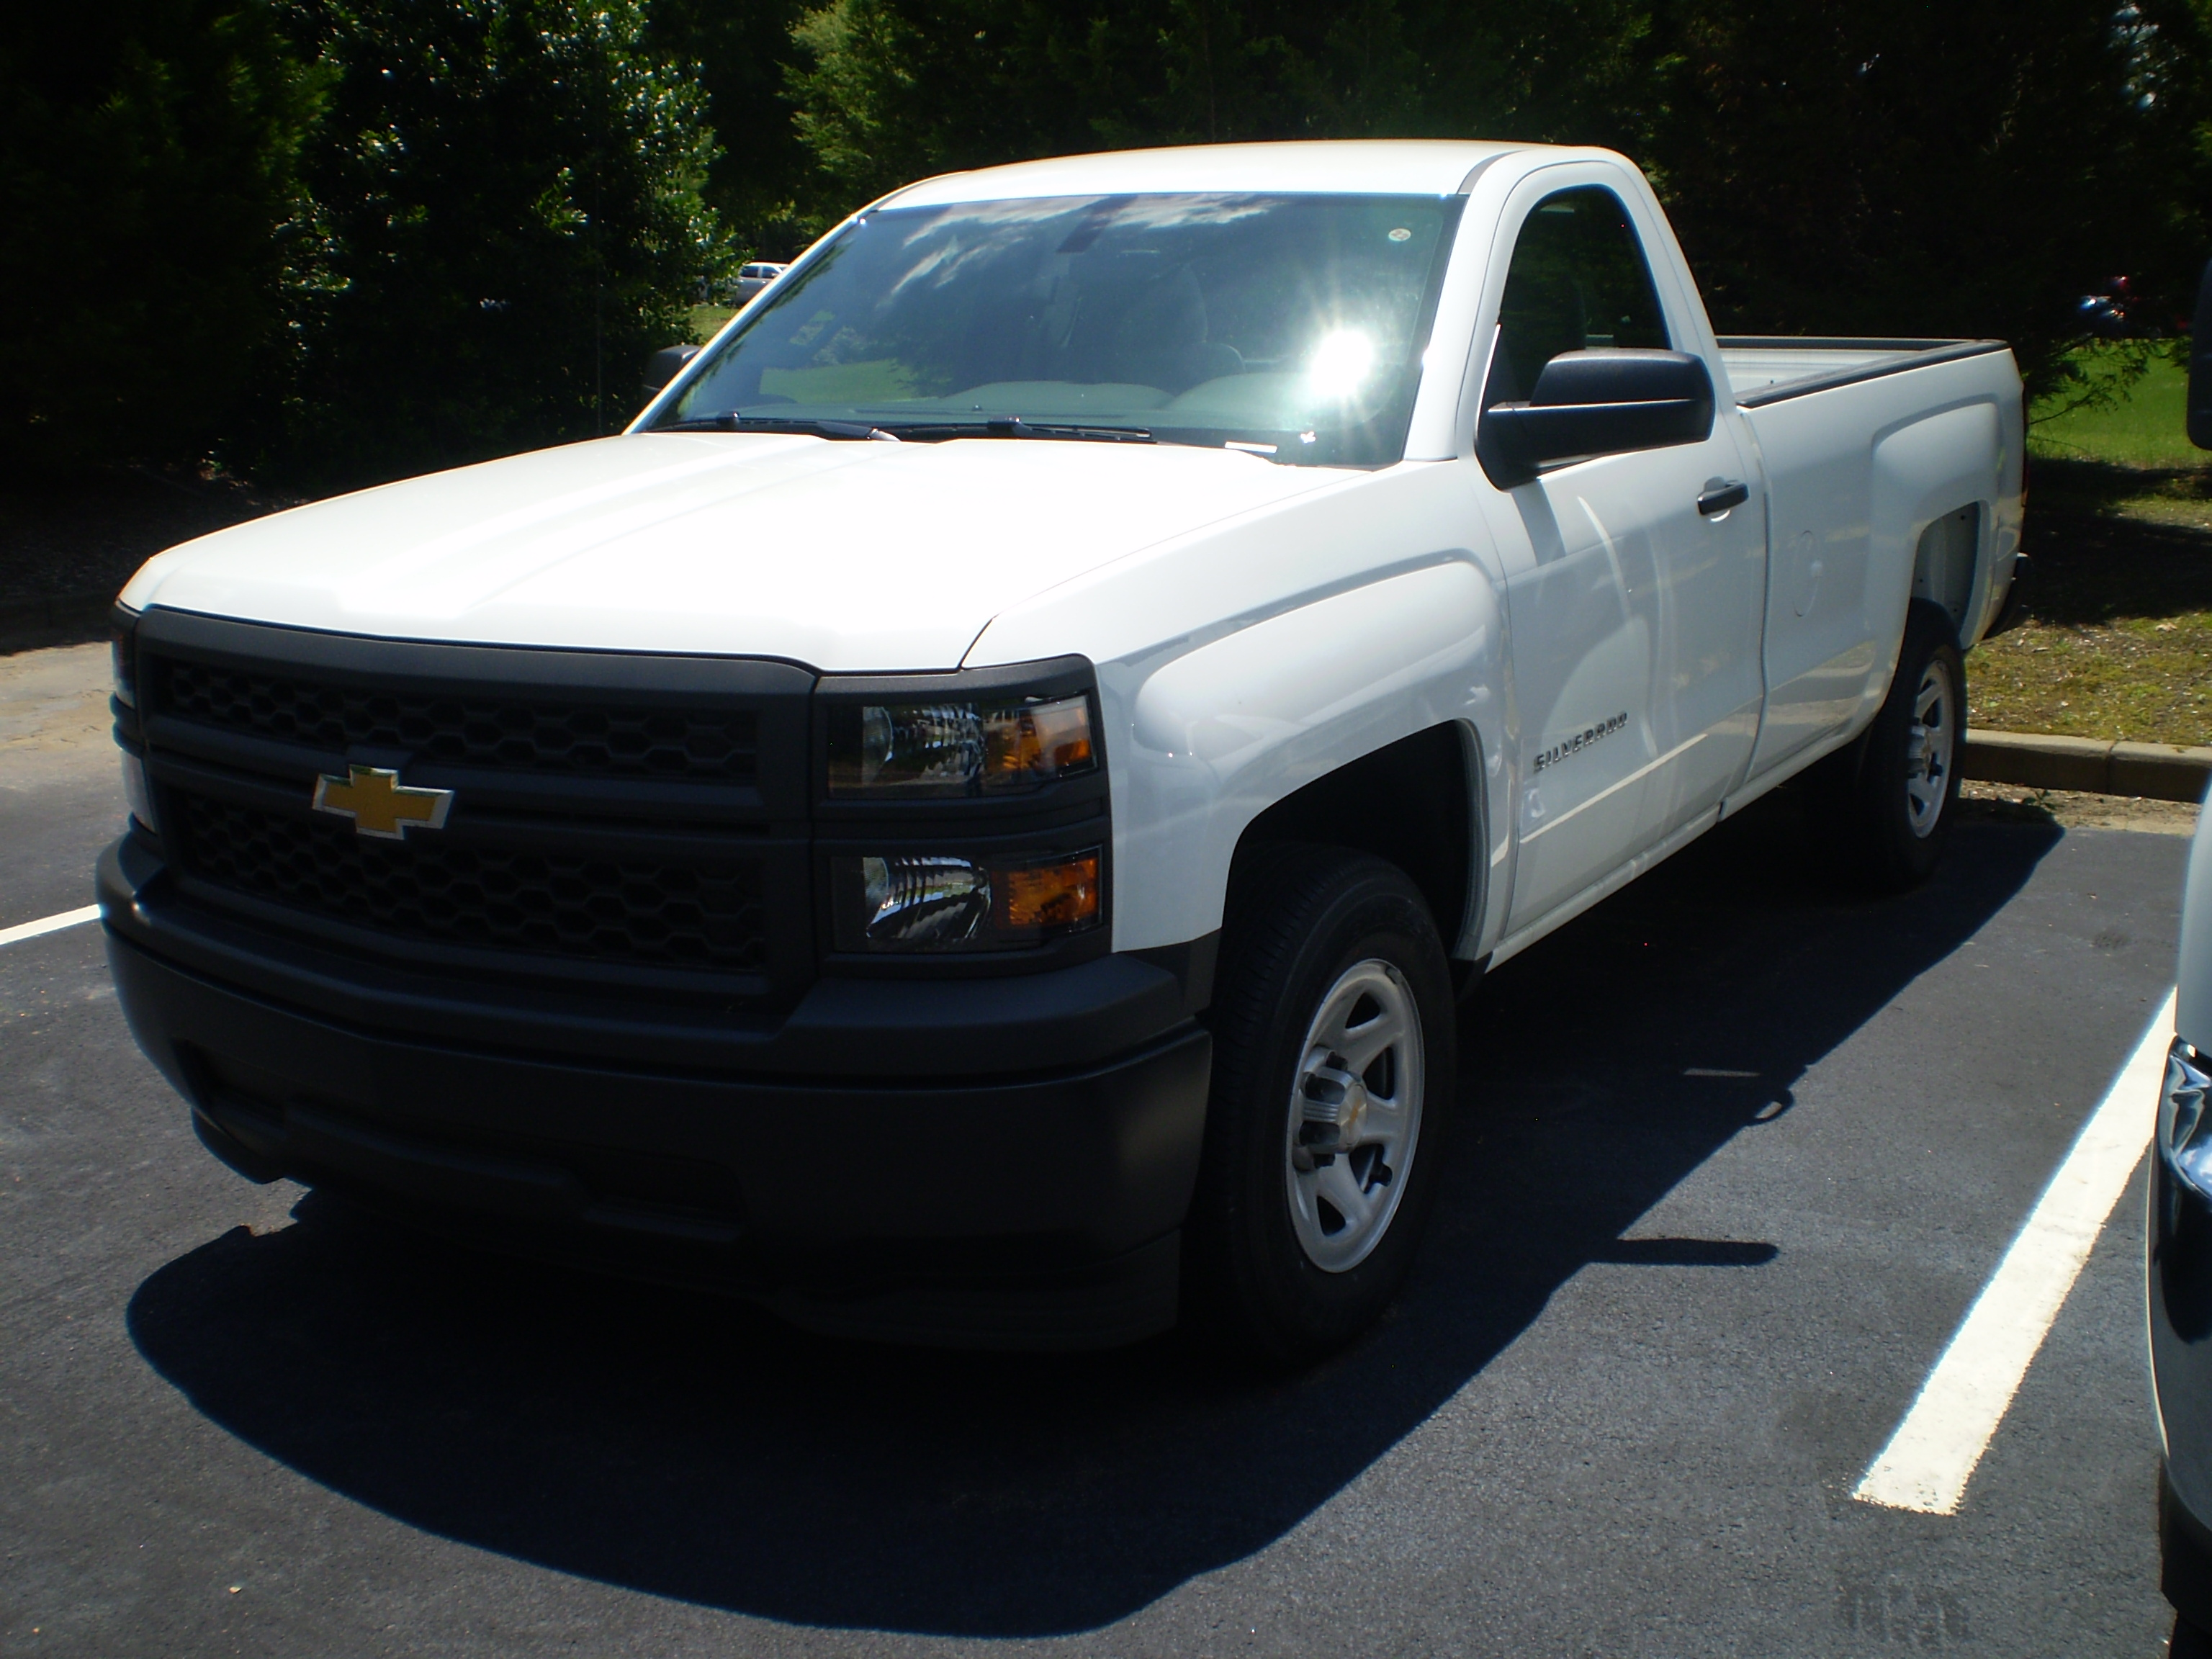 wt interior fresh prevnext silverado essentials the t w with chevrolet starts out factory chevy features black